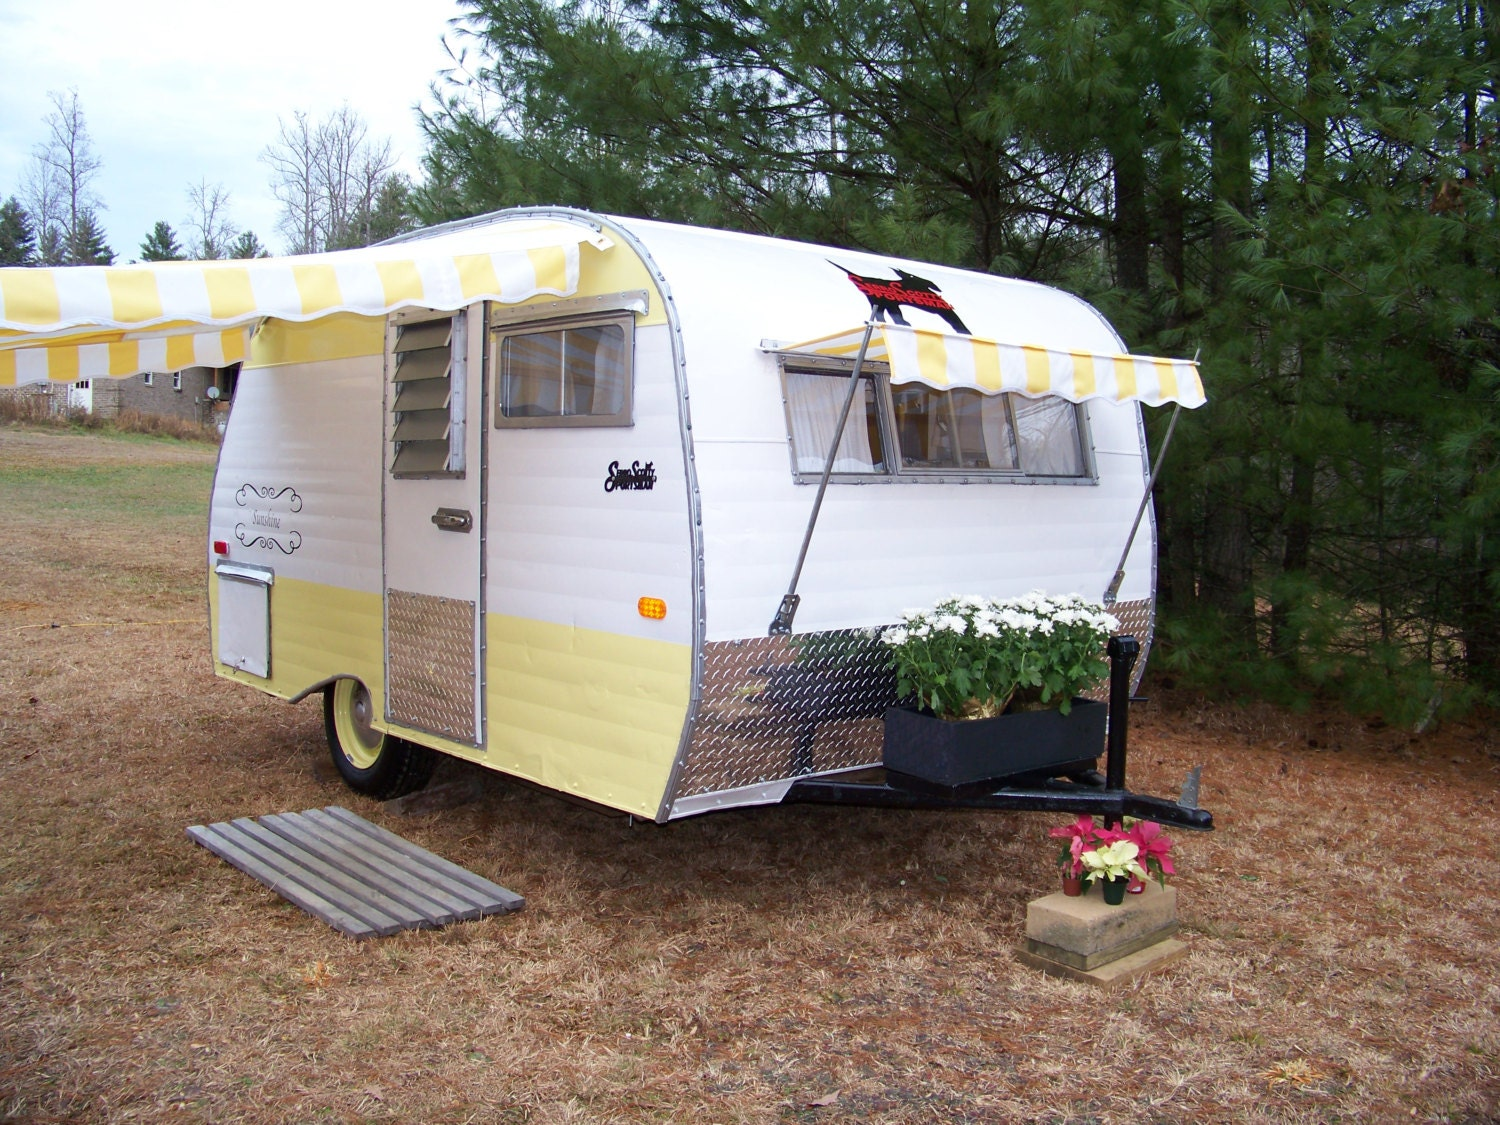 Awnings For Rvs : Vintage camper awning by sew country awnings